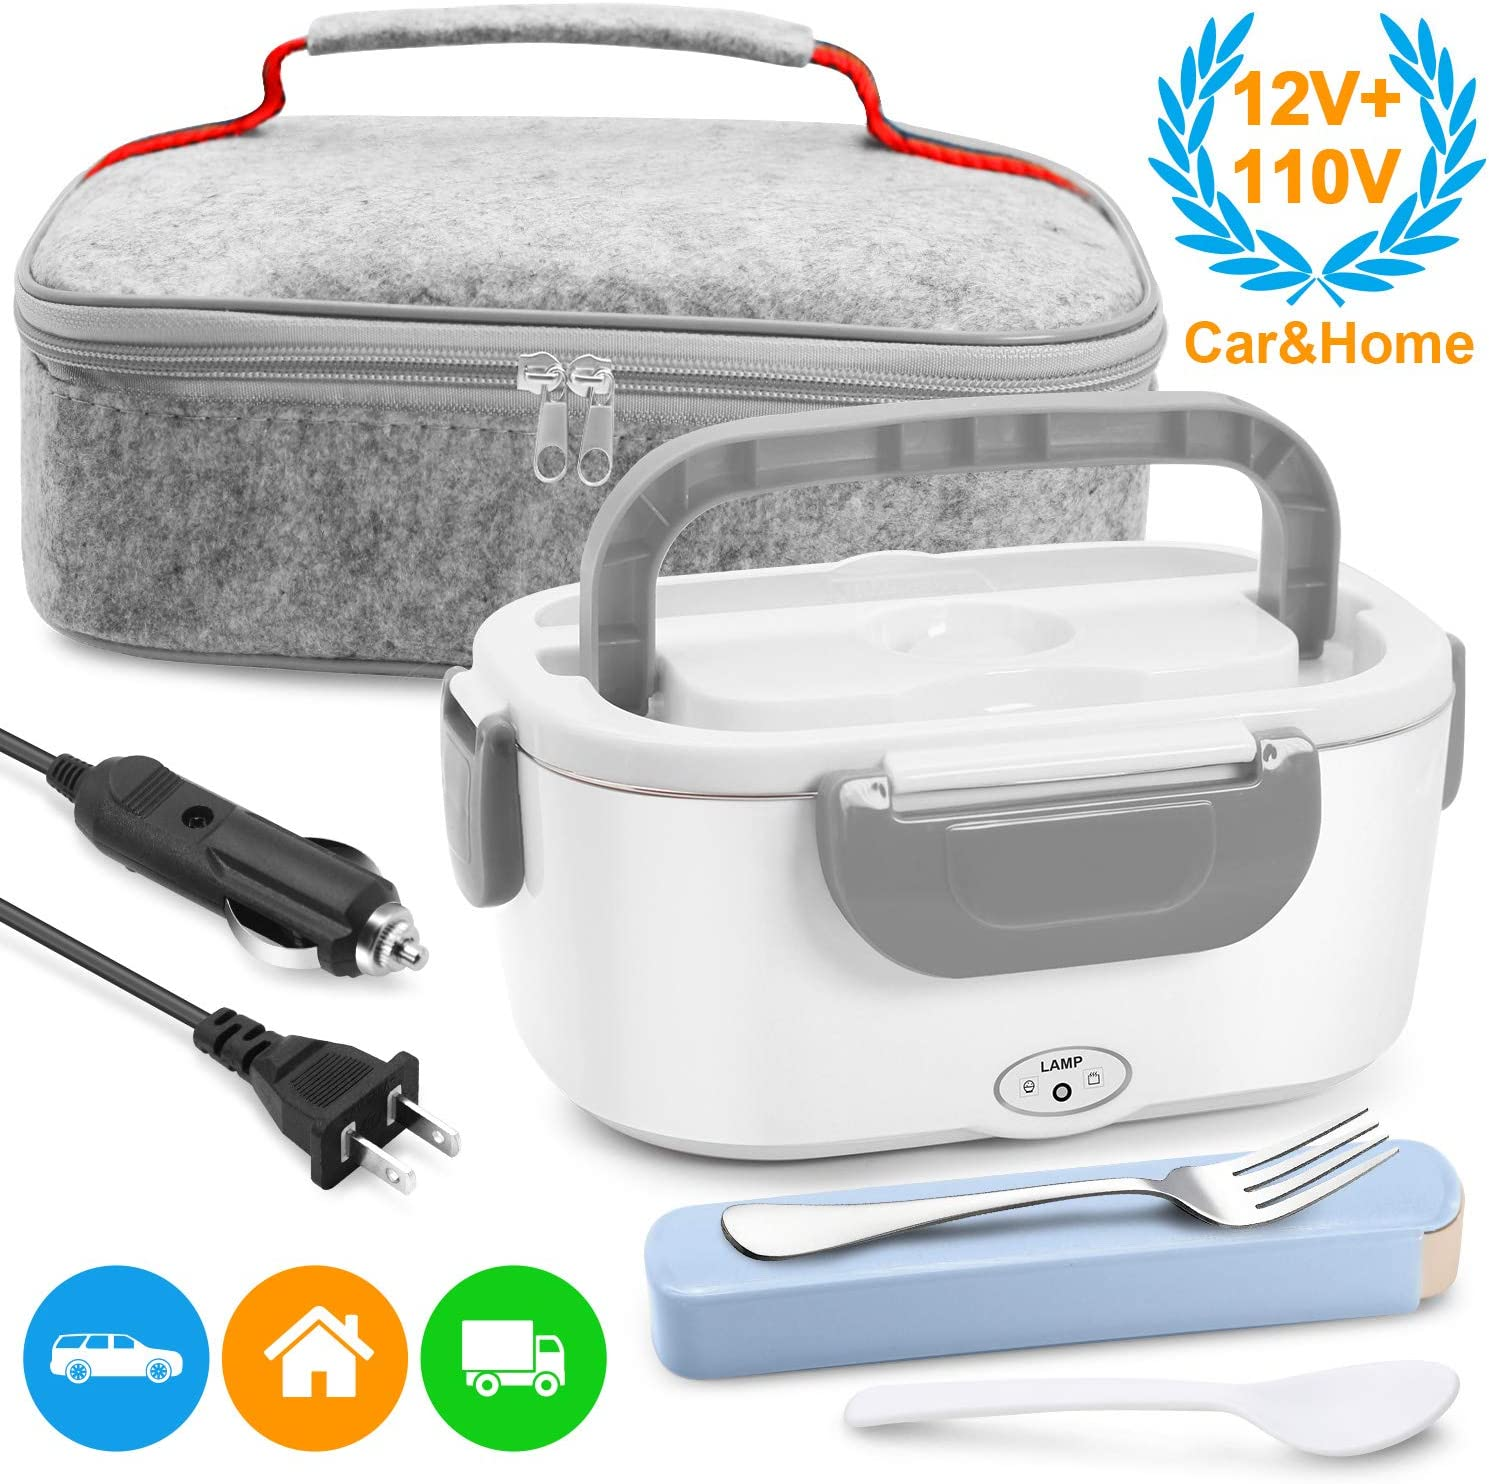 Electric Lunch Box Food Heater - Farochy Heating Lunch Box Heater Portable Microwave Electric Lunch Box 2 in 1 for Car and Home 110V & 12V, Stainless Steel Food Warmer and Heater (Grey)